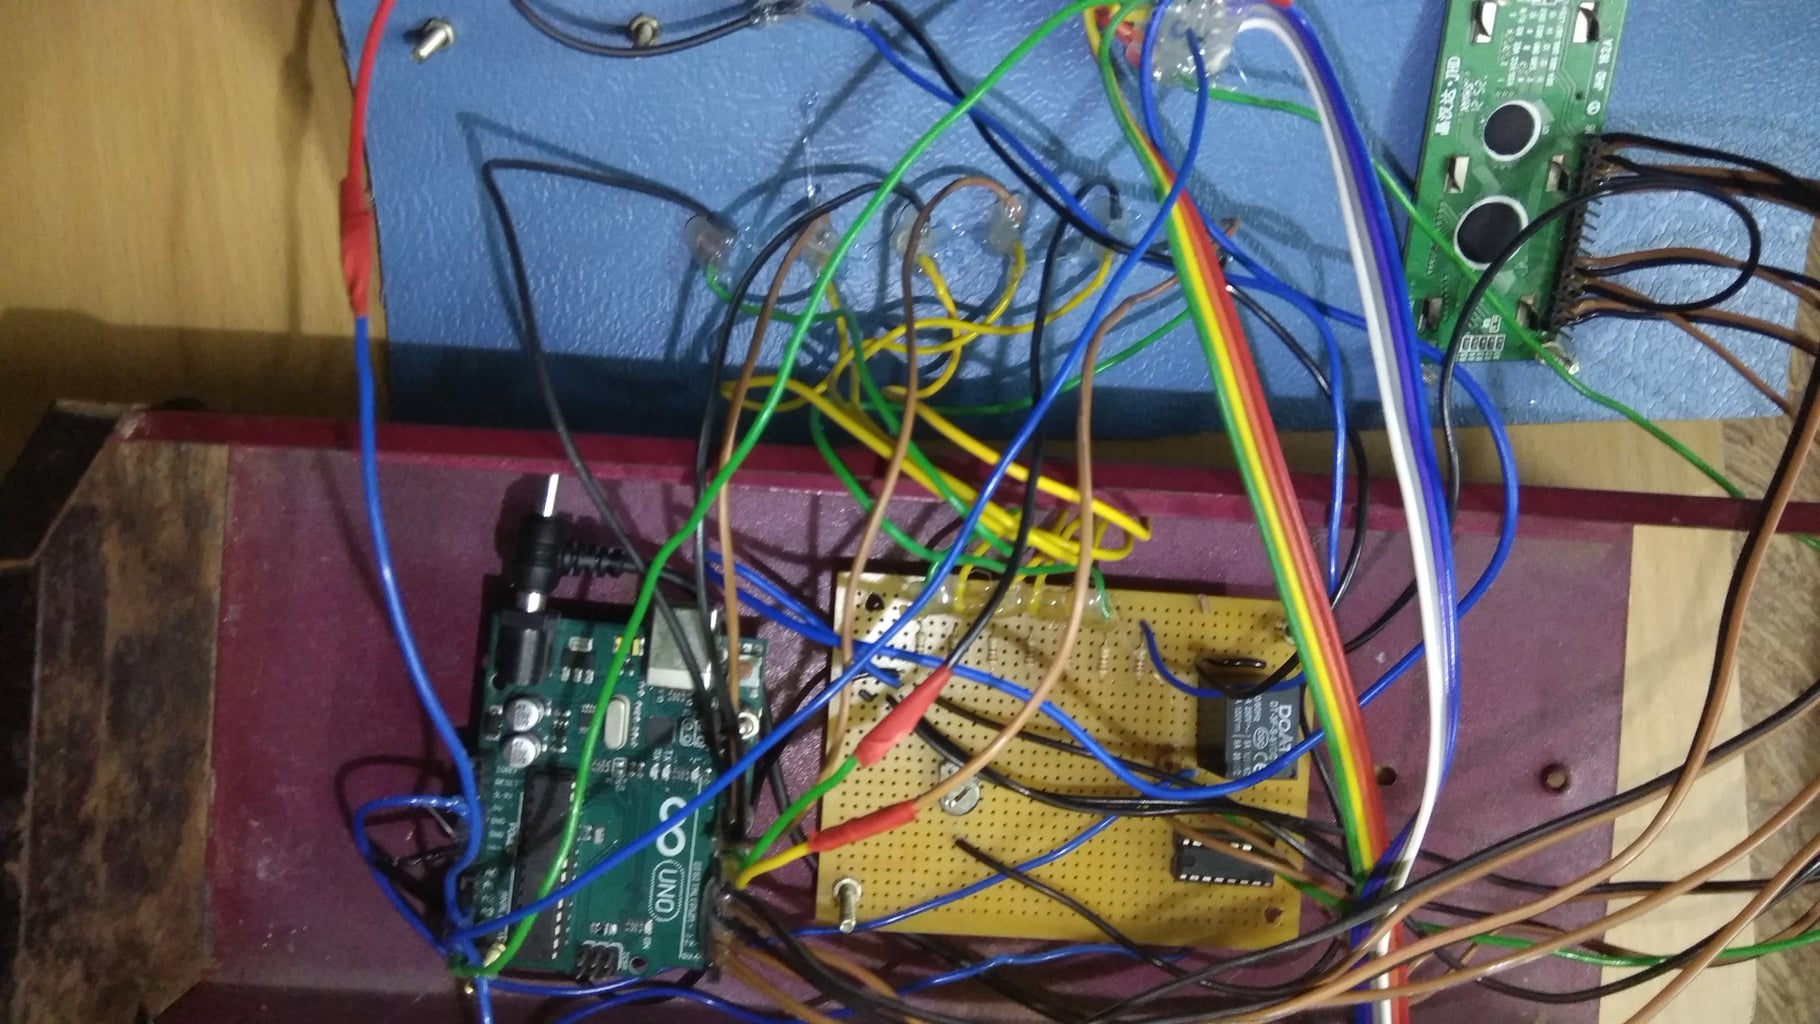 PLACEMENT OF ARDUINO